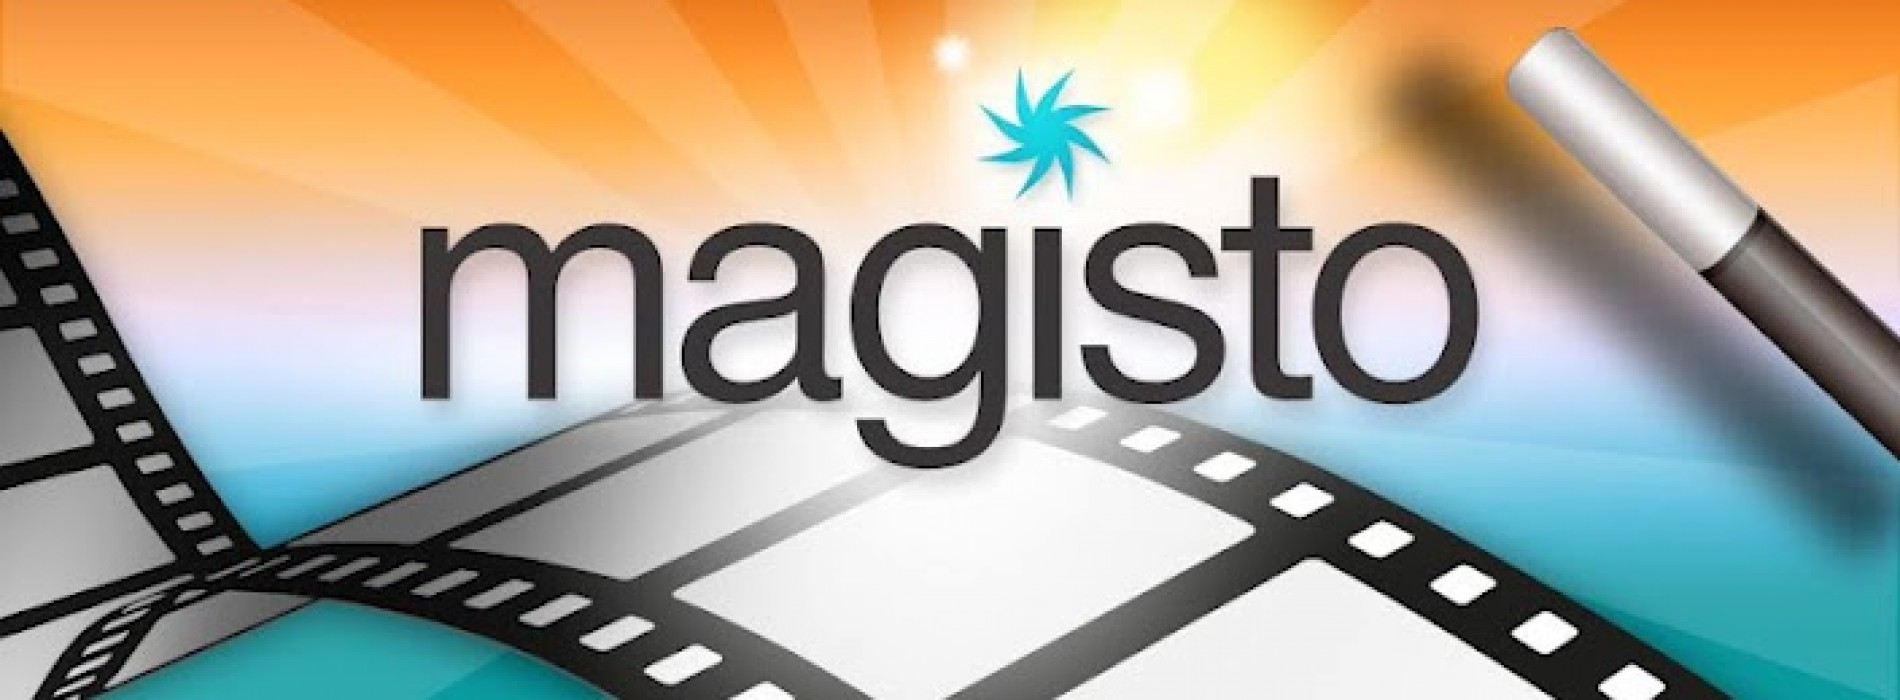 Video editing app Magisto now on Android